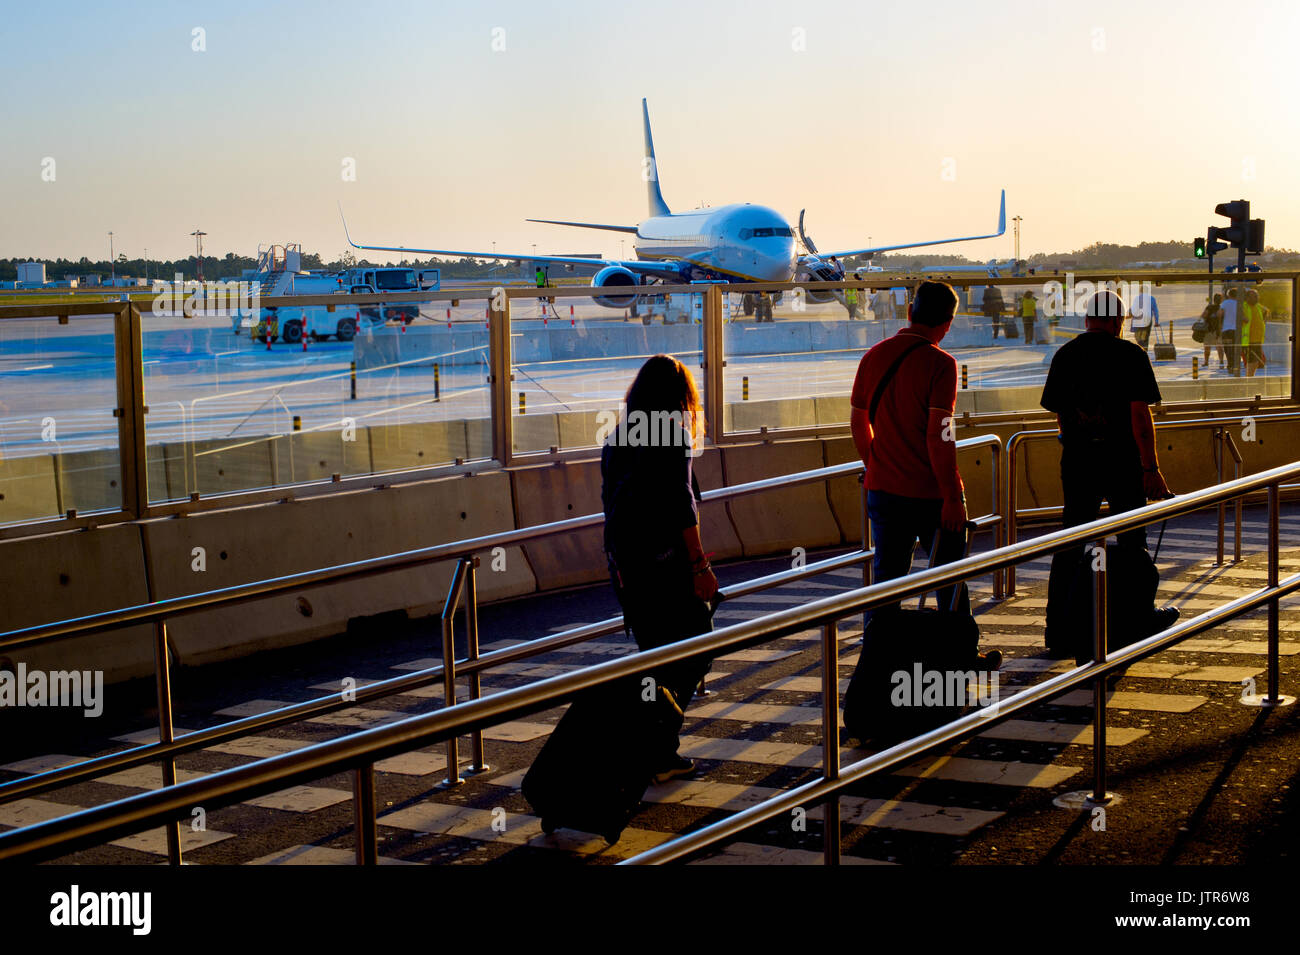 Passengers boarding airplane at an airport at sunset - Stock Image